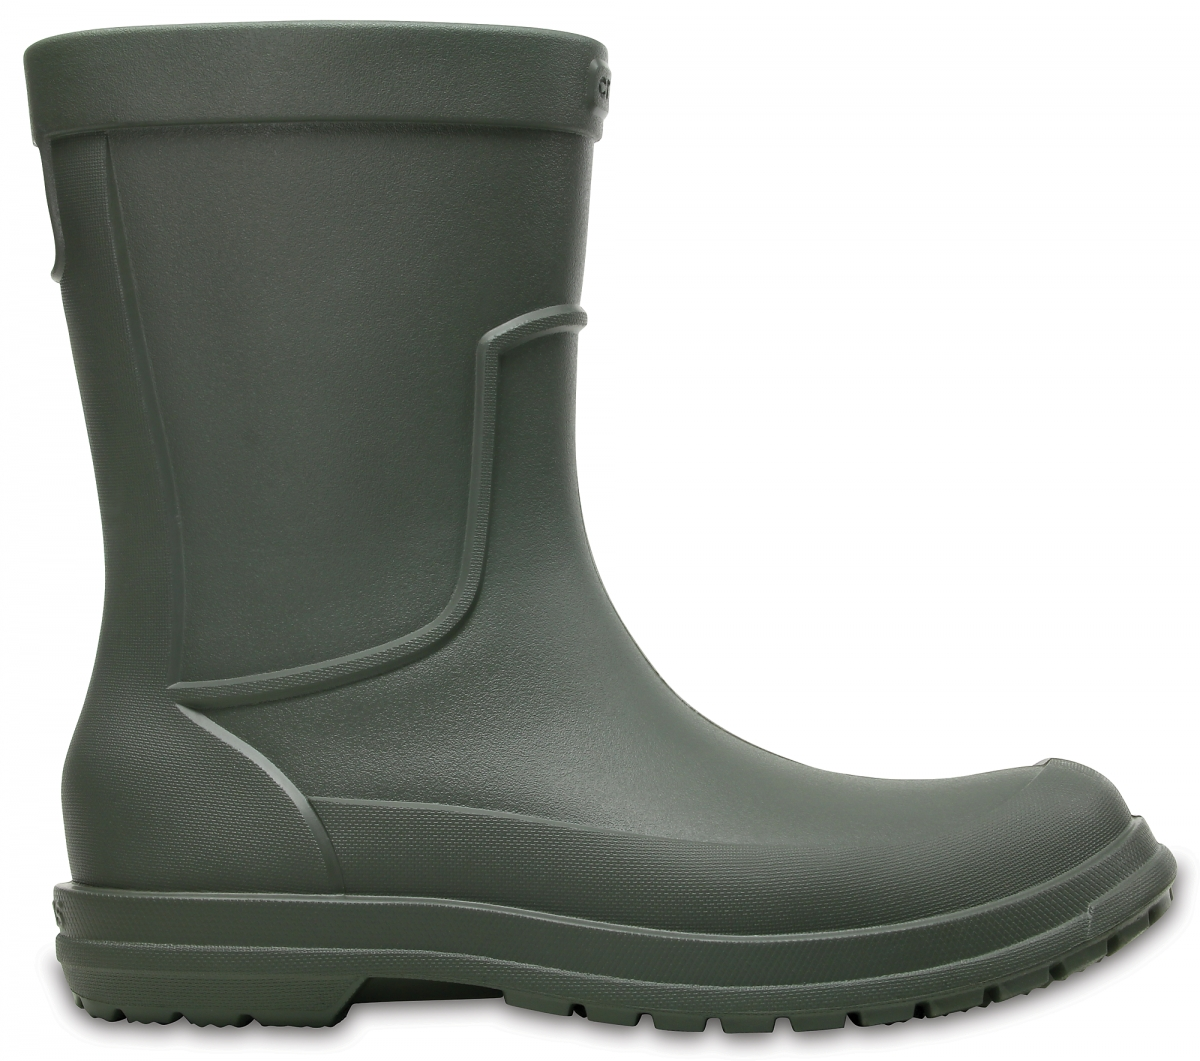 Crocs AllCast Rain Boot Men - Dusty Olive, M13 (48-49)